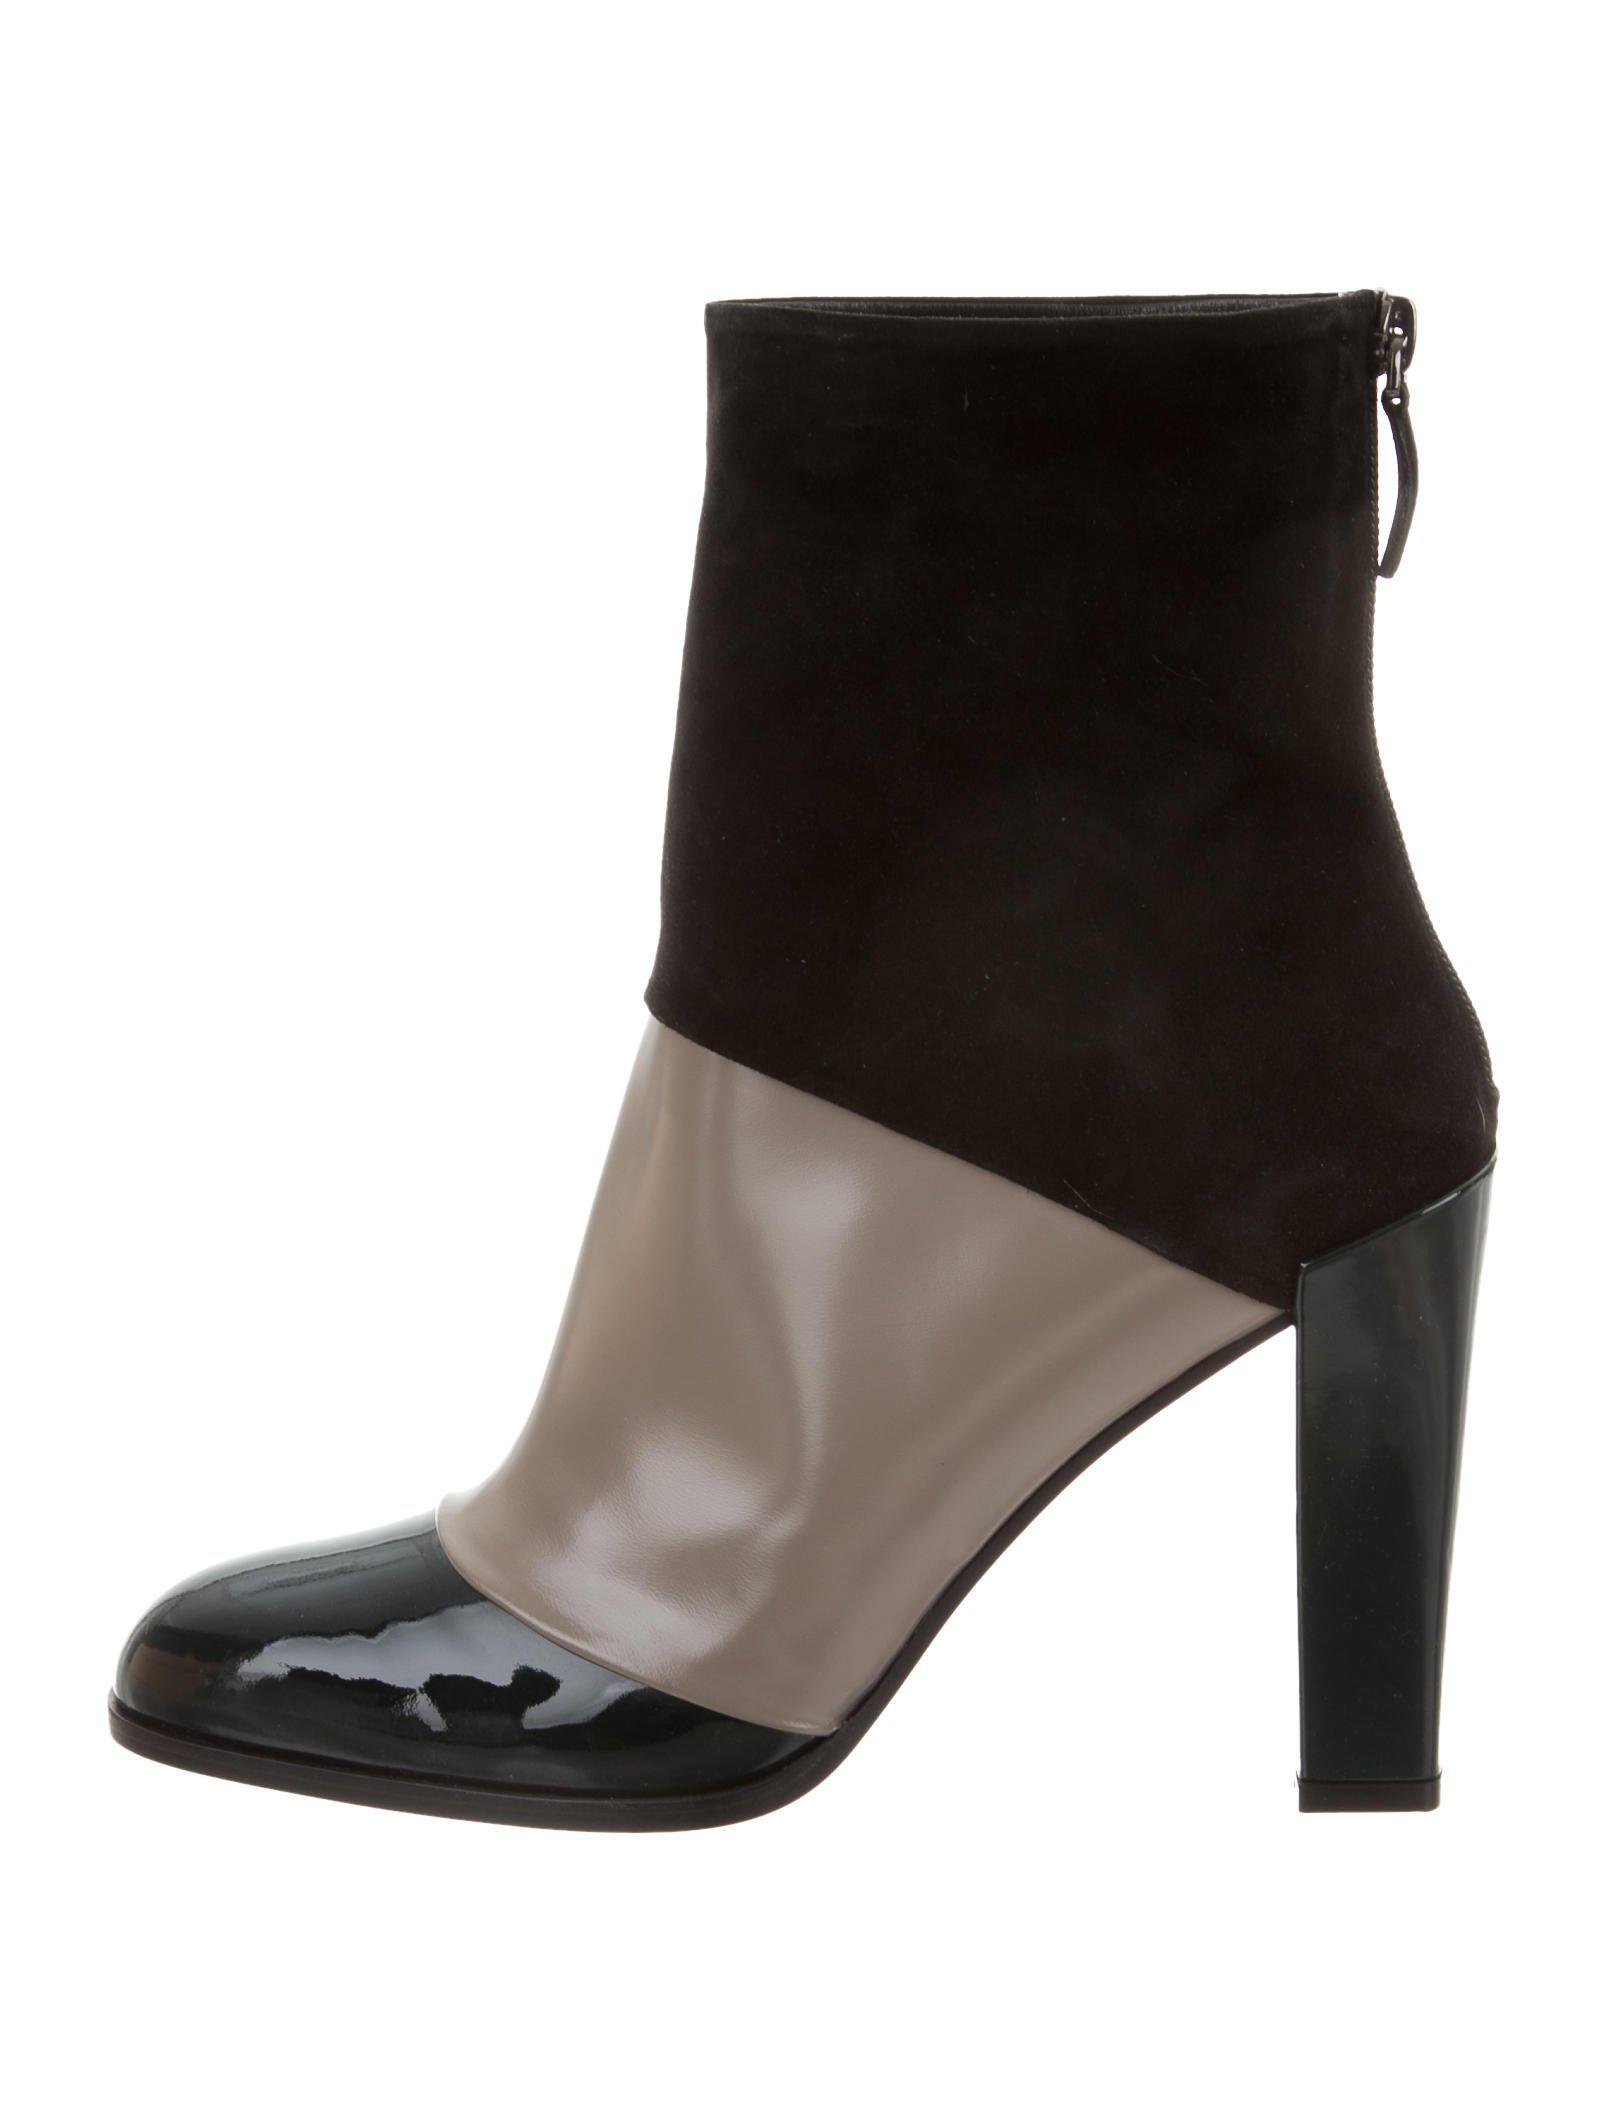 60508c00f19046 Lyst - Roger Vivier Round-toe Colorblock Ankle Boots W/ Tags in Black